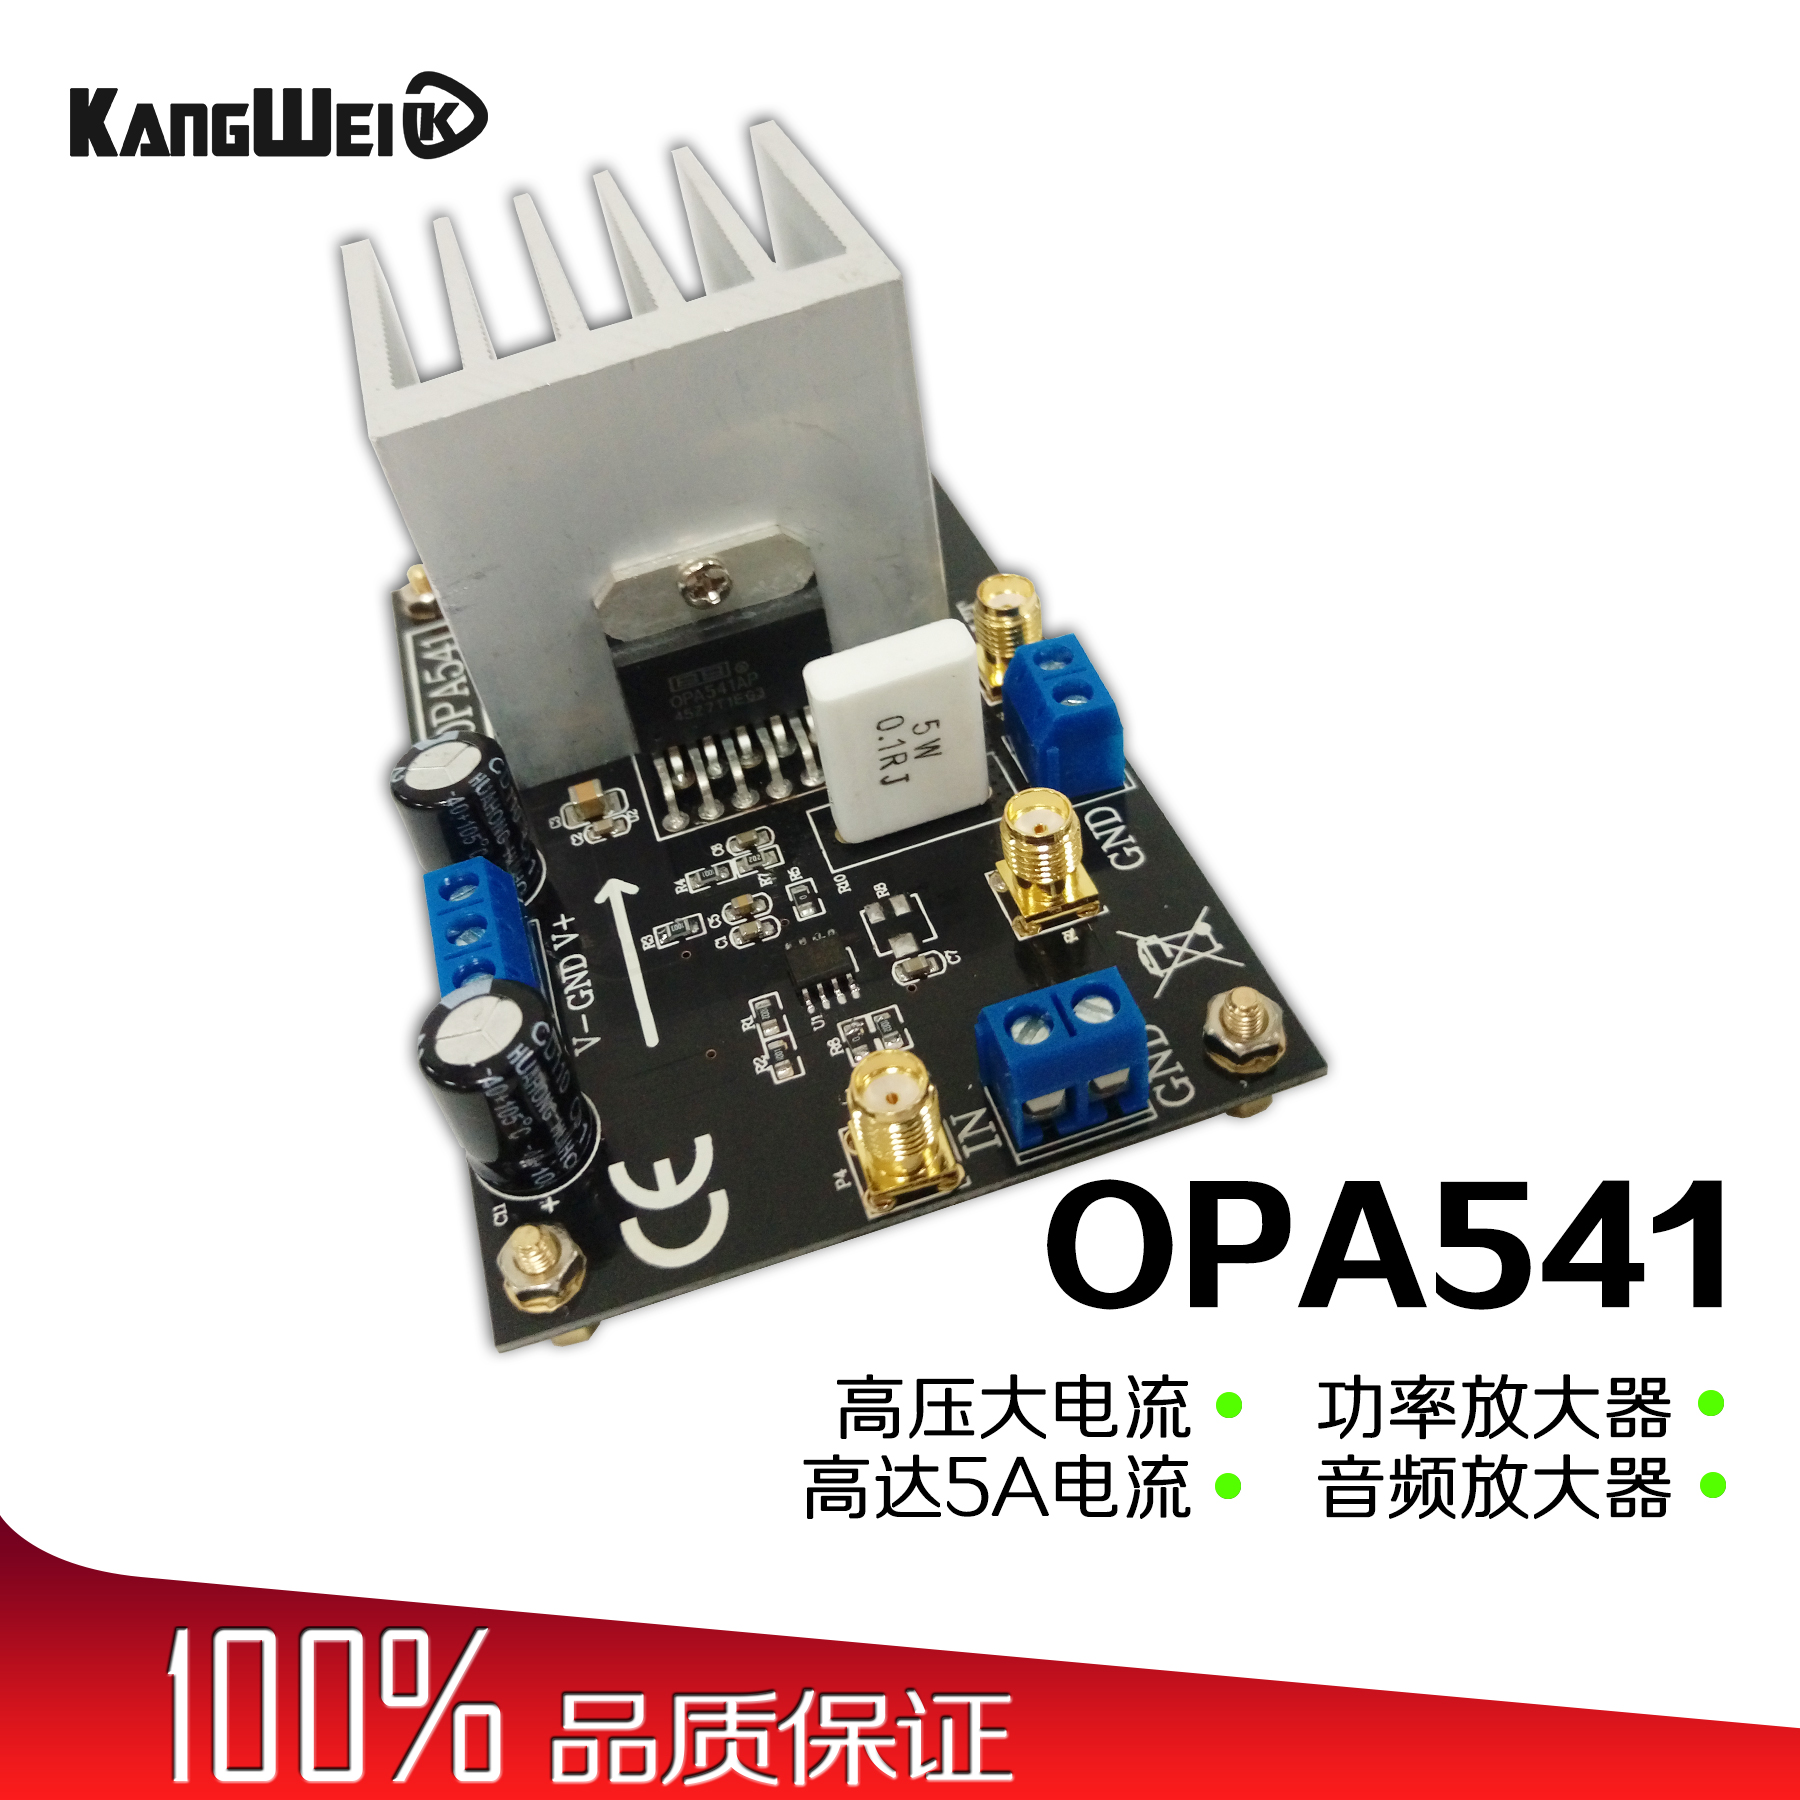 OPA541 Module Power Amplifier Audio Amplifier 5A Current High Voltage High Current Amplifier Board the buf634 module current buffer cache buffer amplifier amplifier conway technology